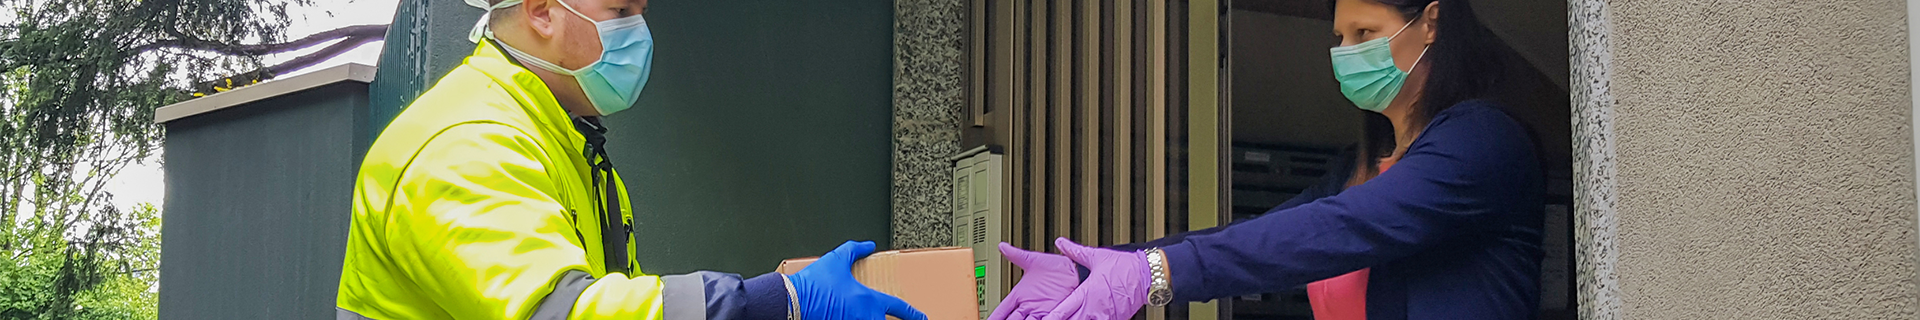 A woman in face mask and gloves takes a delivery of a box from a man also in face mask and gloves